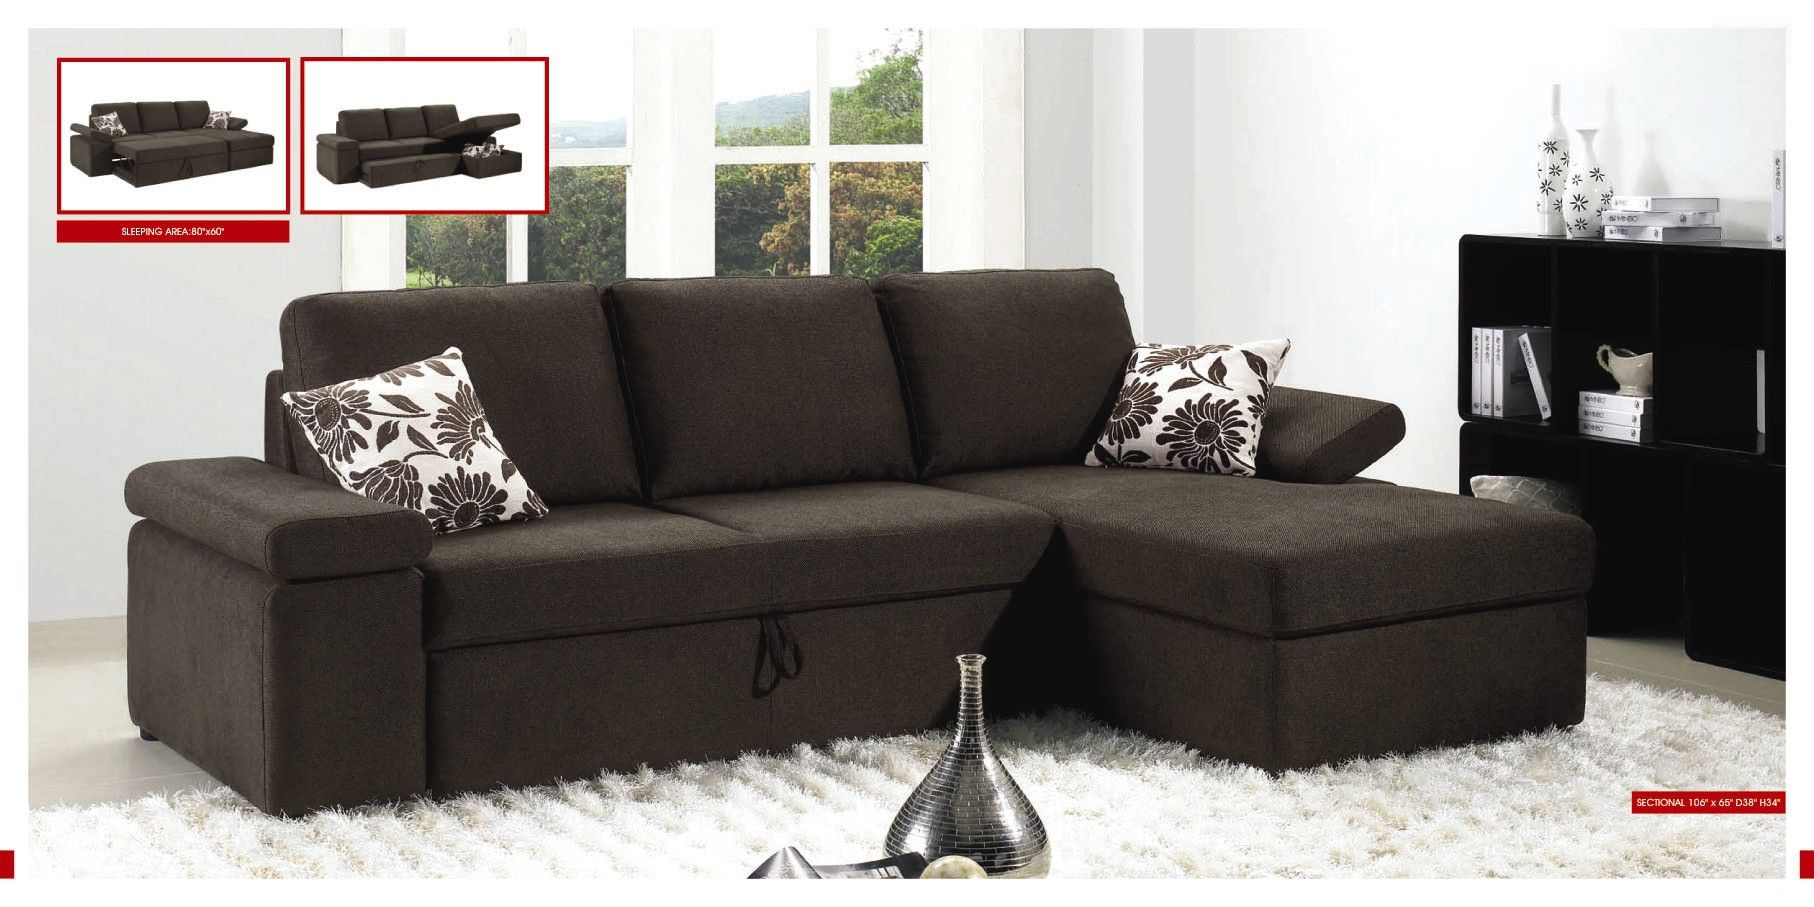 Awesome Fancy Small Sectional Sleeper Sofa 20 With Additional Home Design Ideas